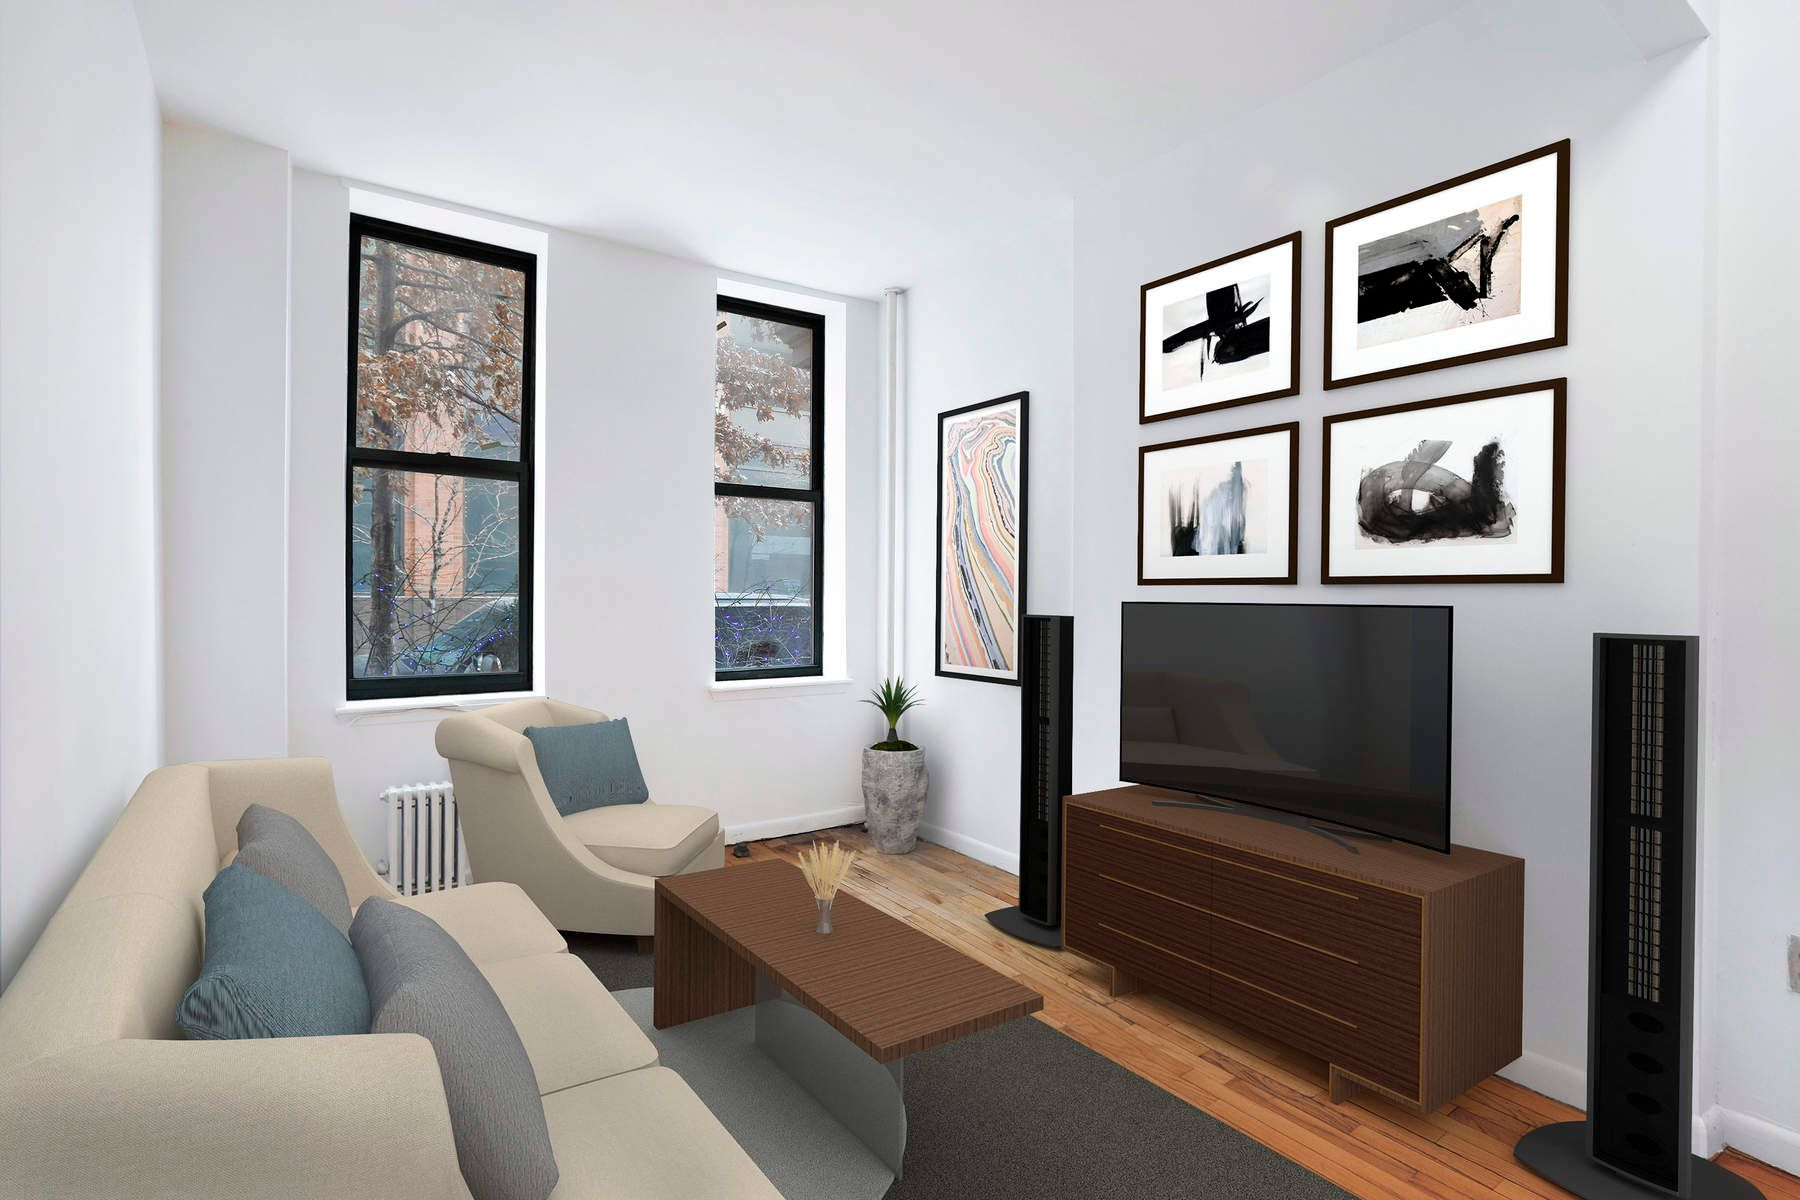 Co-op for Sale at Charming 1BDR in Midtown 500 West 55th Street Apt 1E, Midtown West, New York, New York, 10019 United States